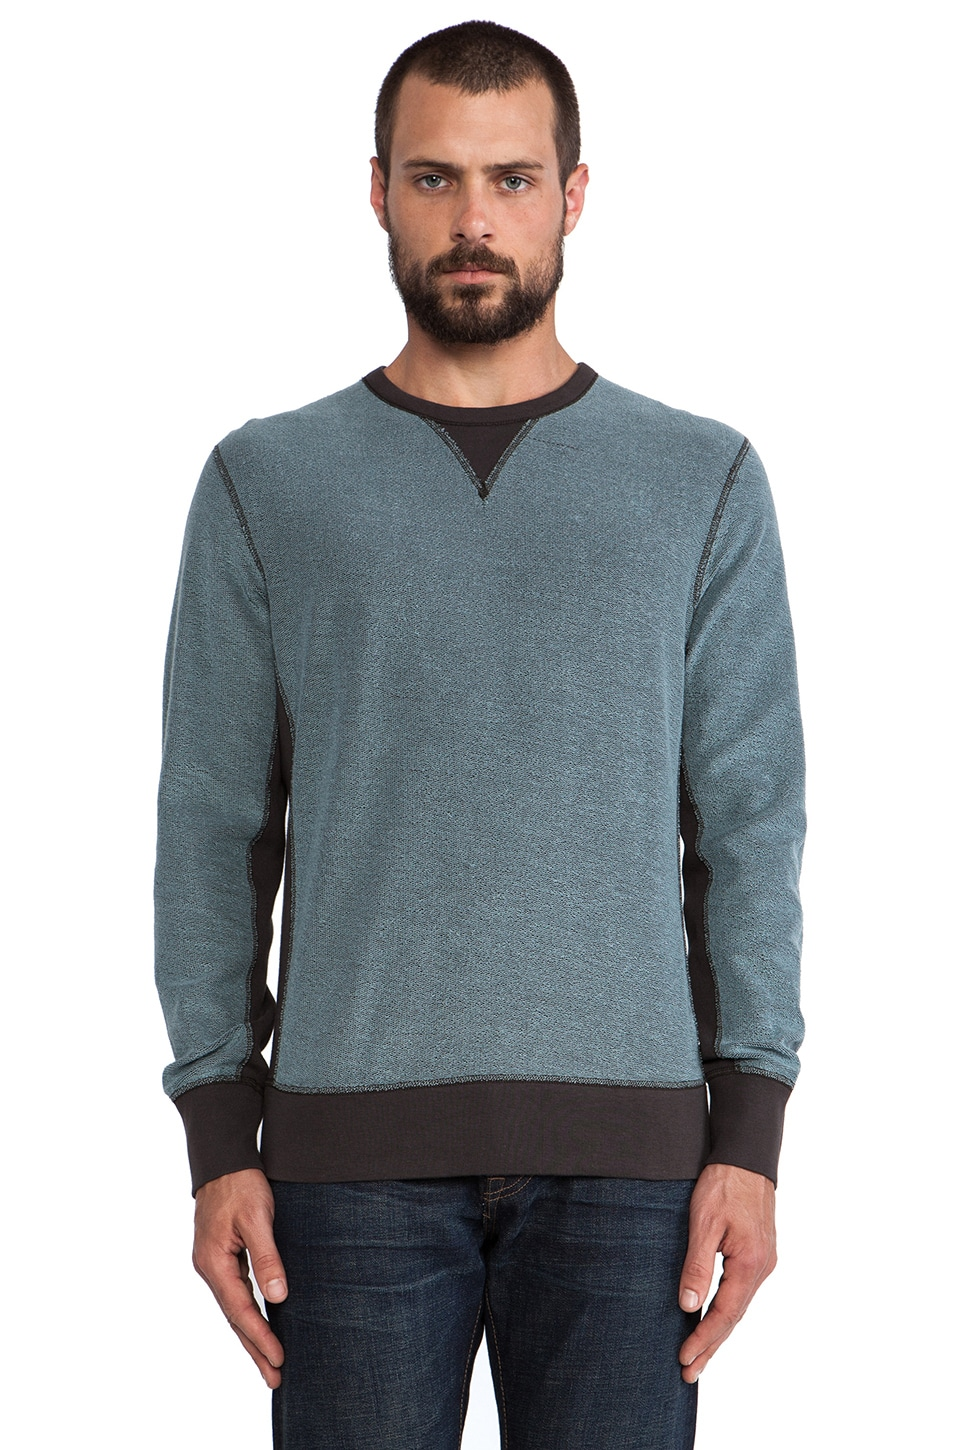 Rag & Bone Reversible Sweatshirt in Light Black